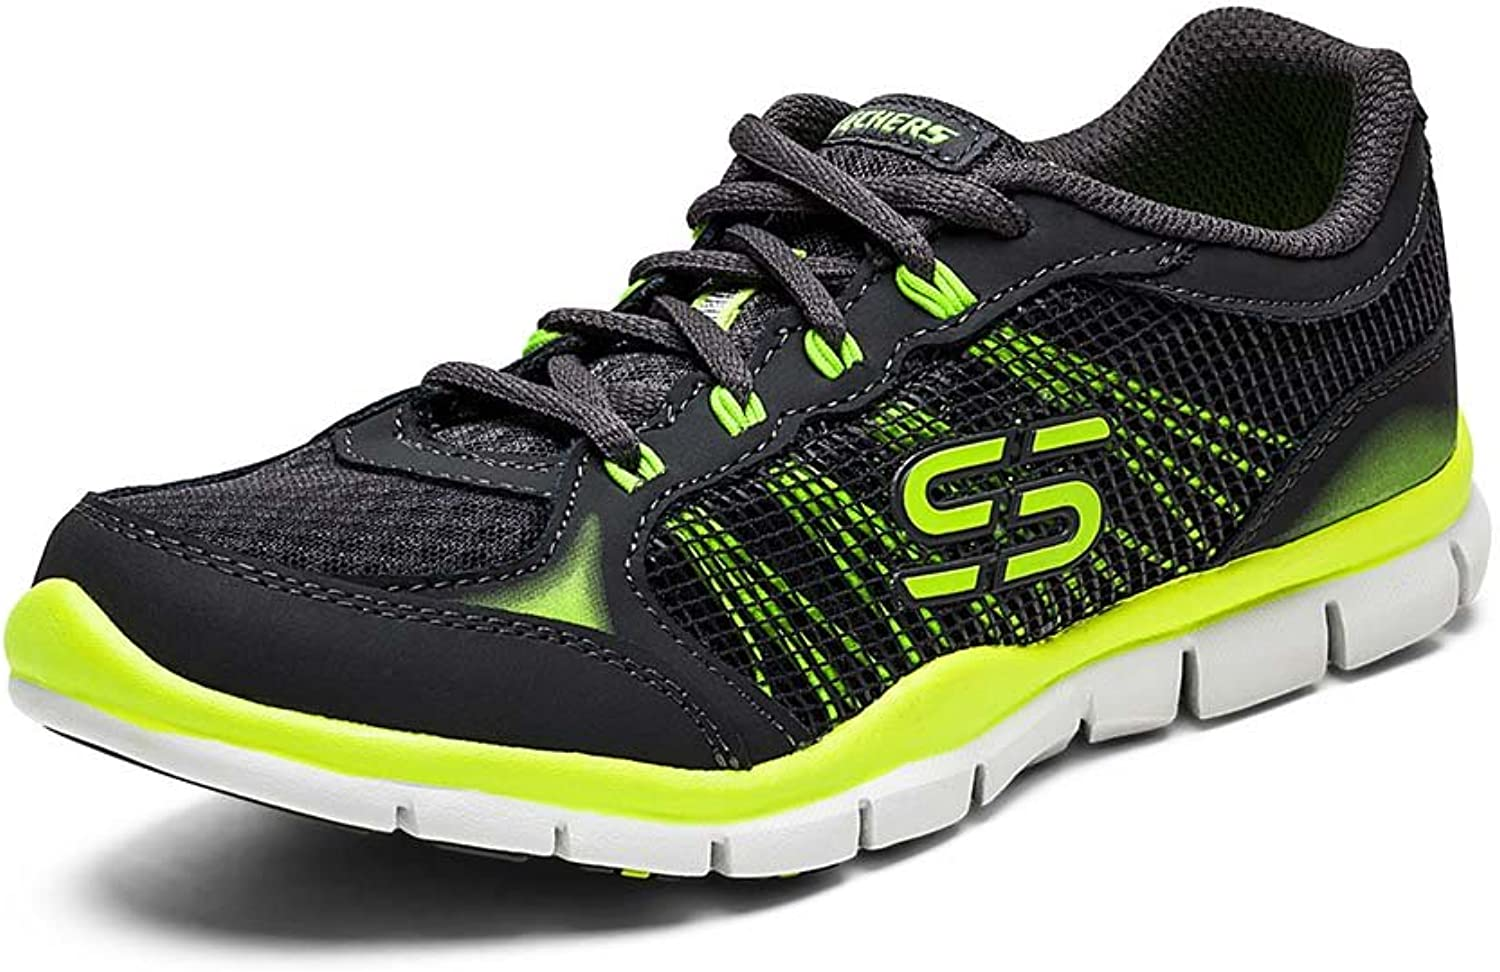 Women's Skechers, Ring Leader Running shoes